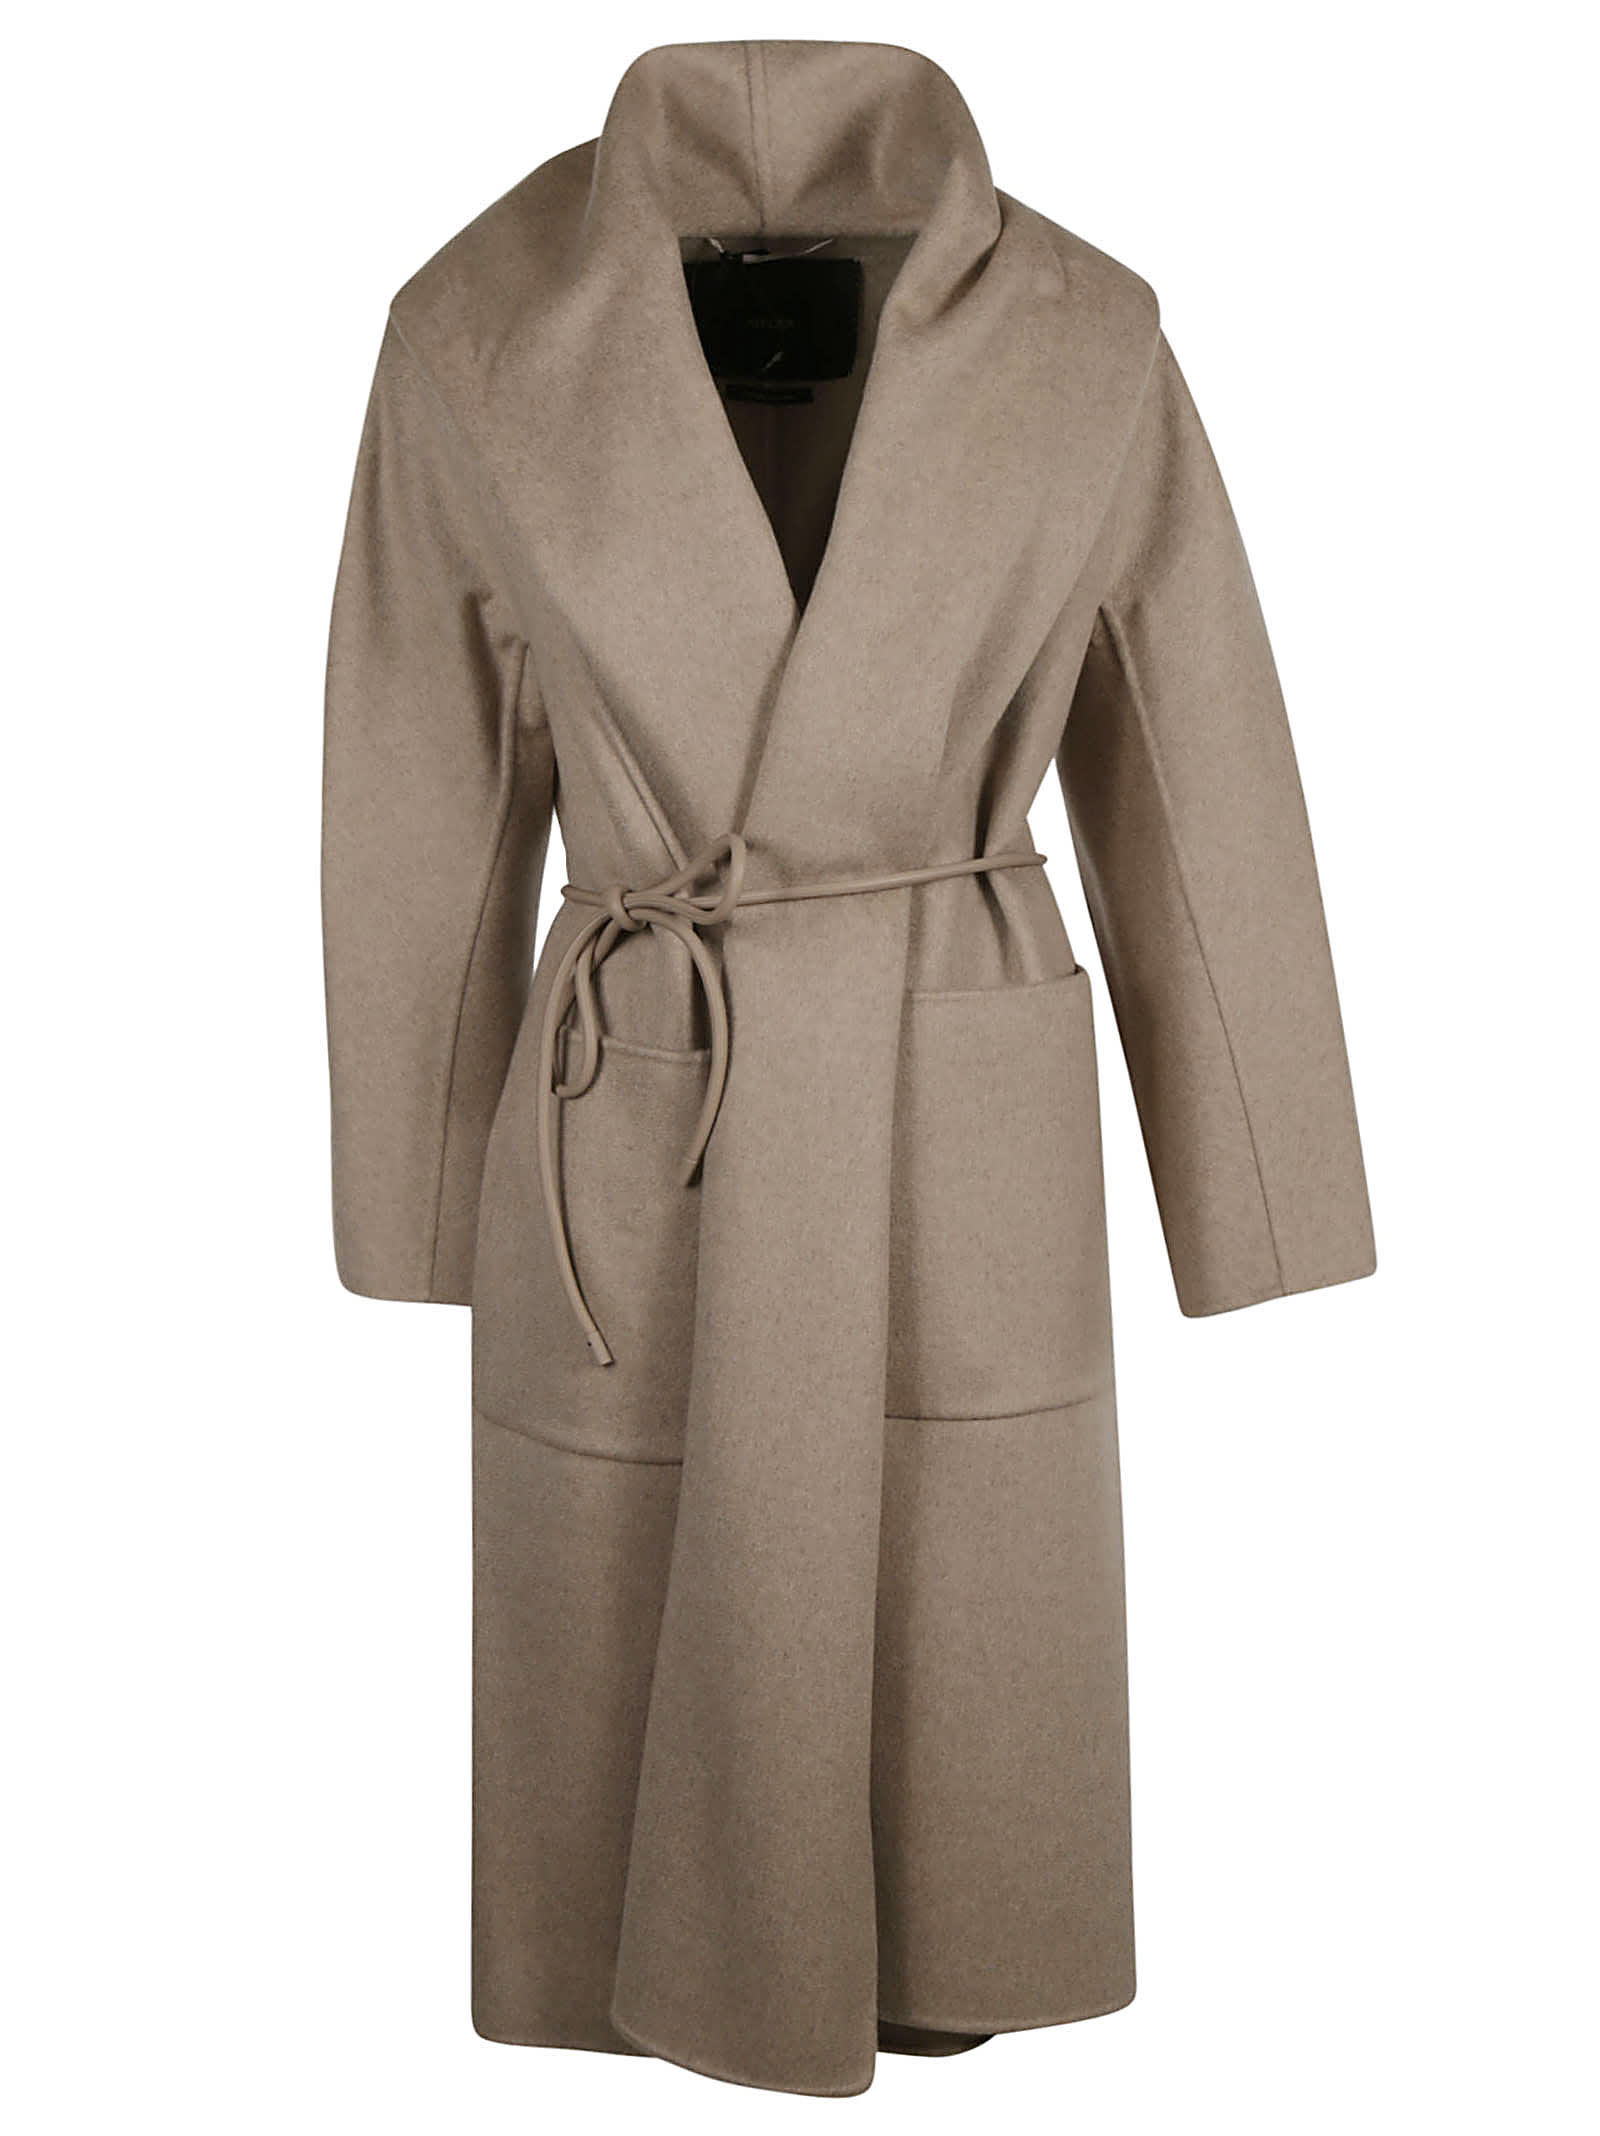 Max Mara Drawstring Tie Waist Wrapped Coat